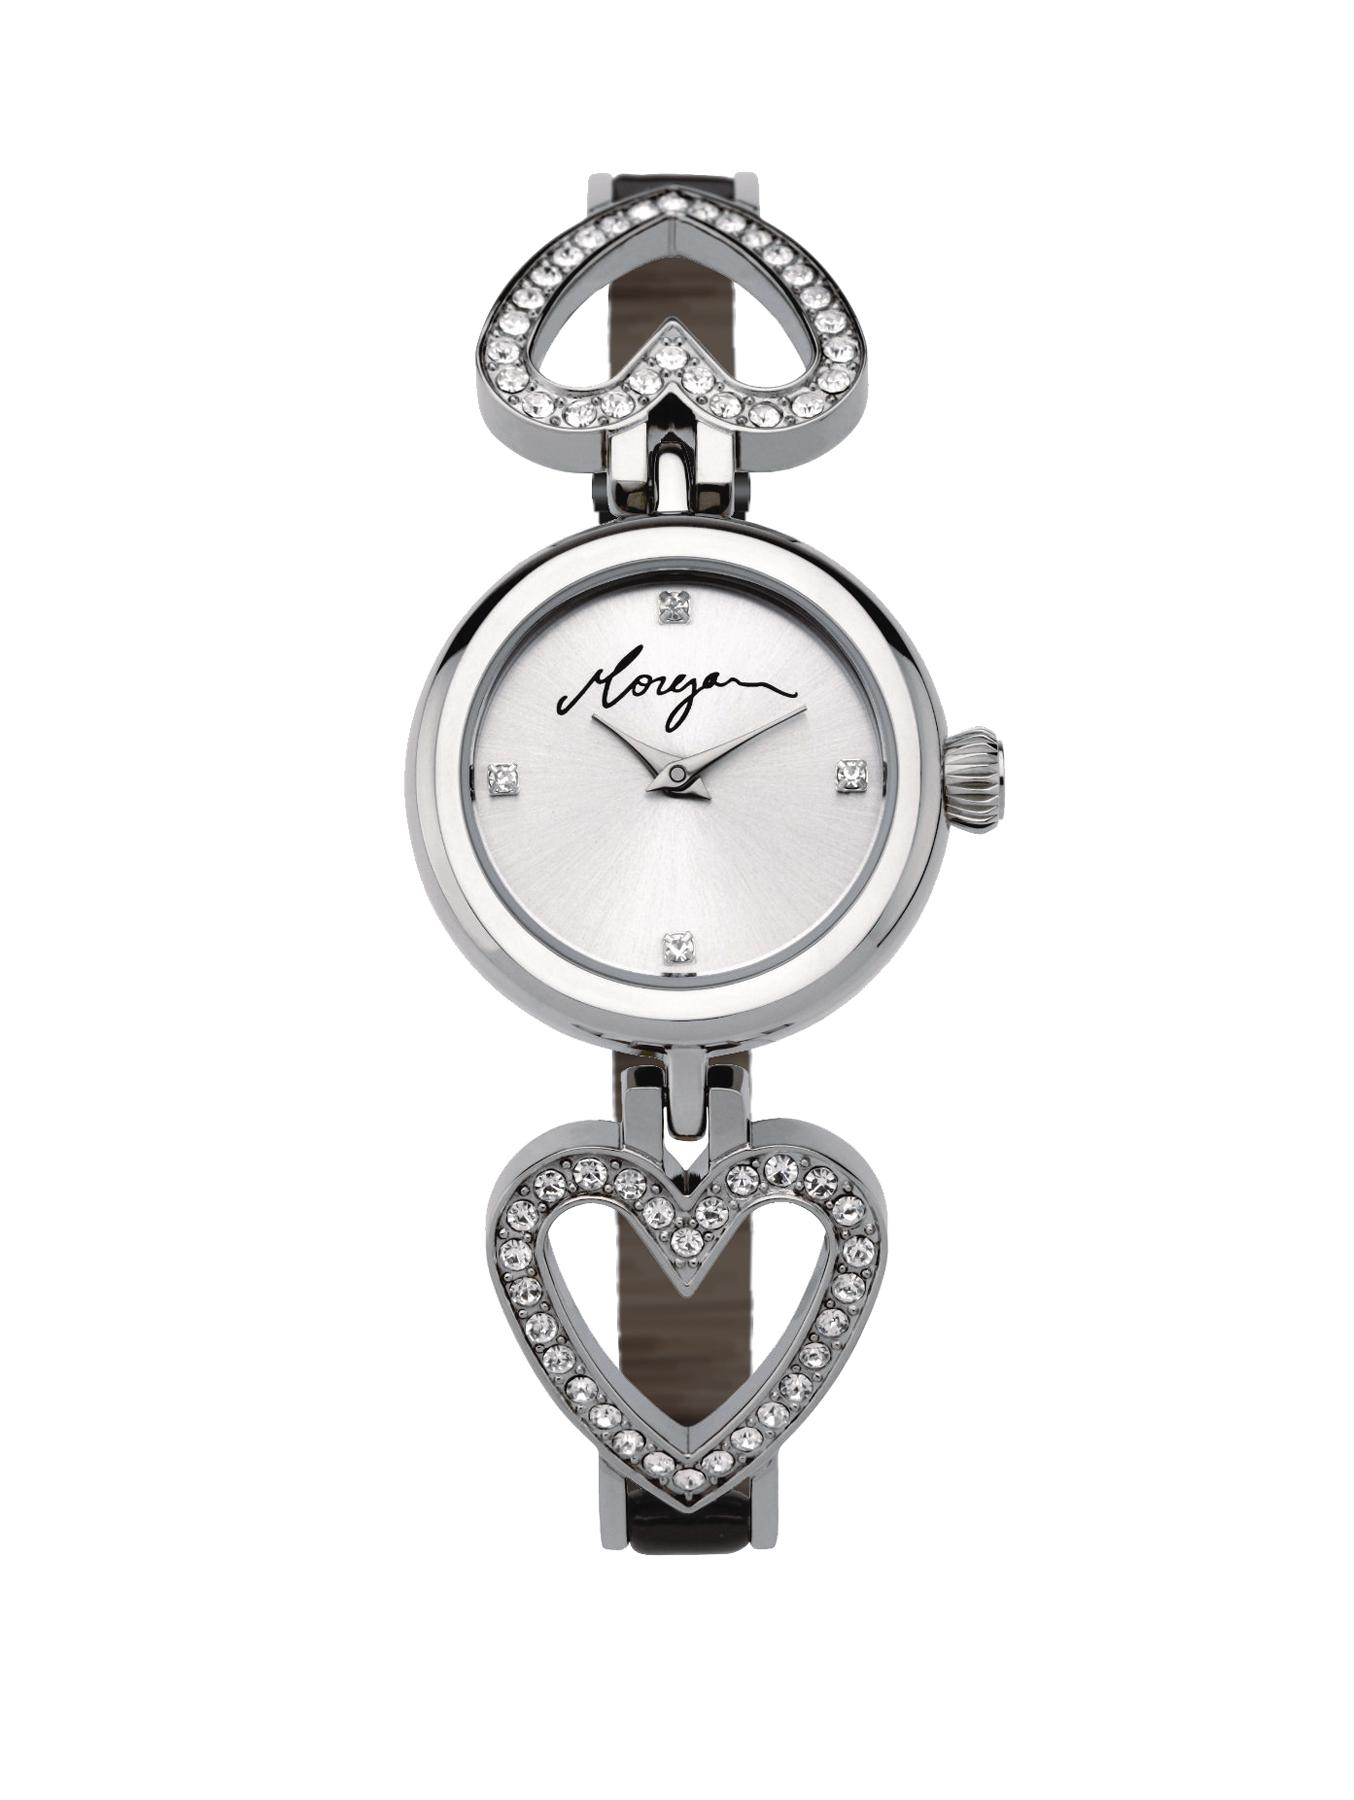 Silver Tone Dial and Black Leather Strap Ladies Watch at Littlewoods